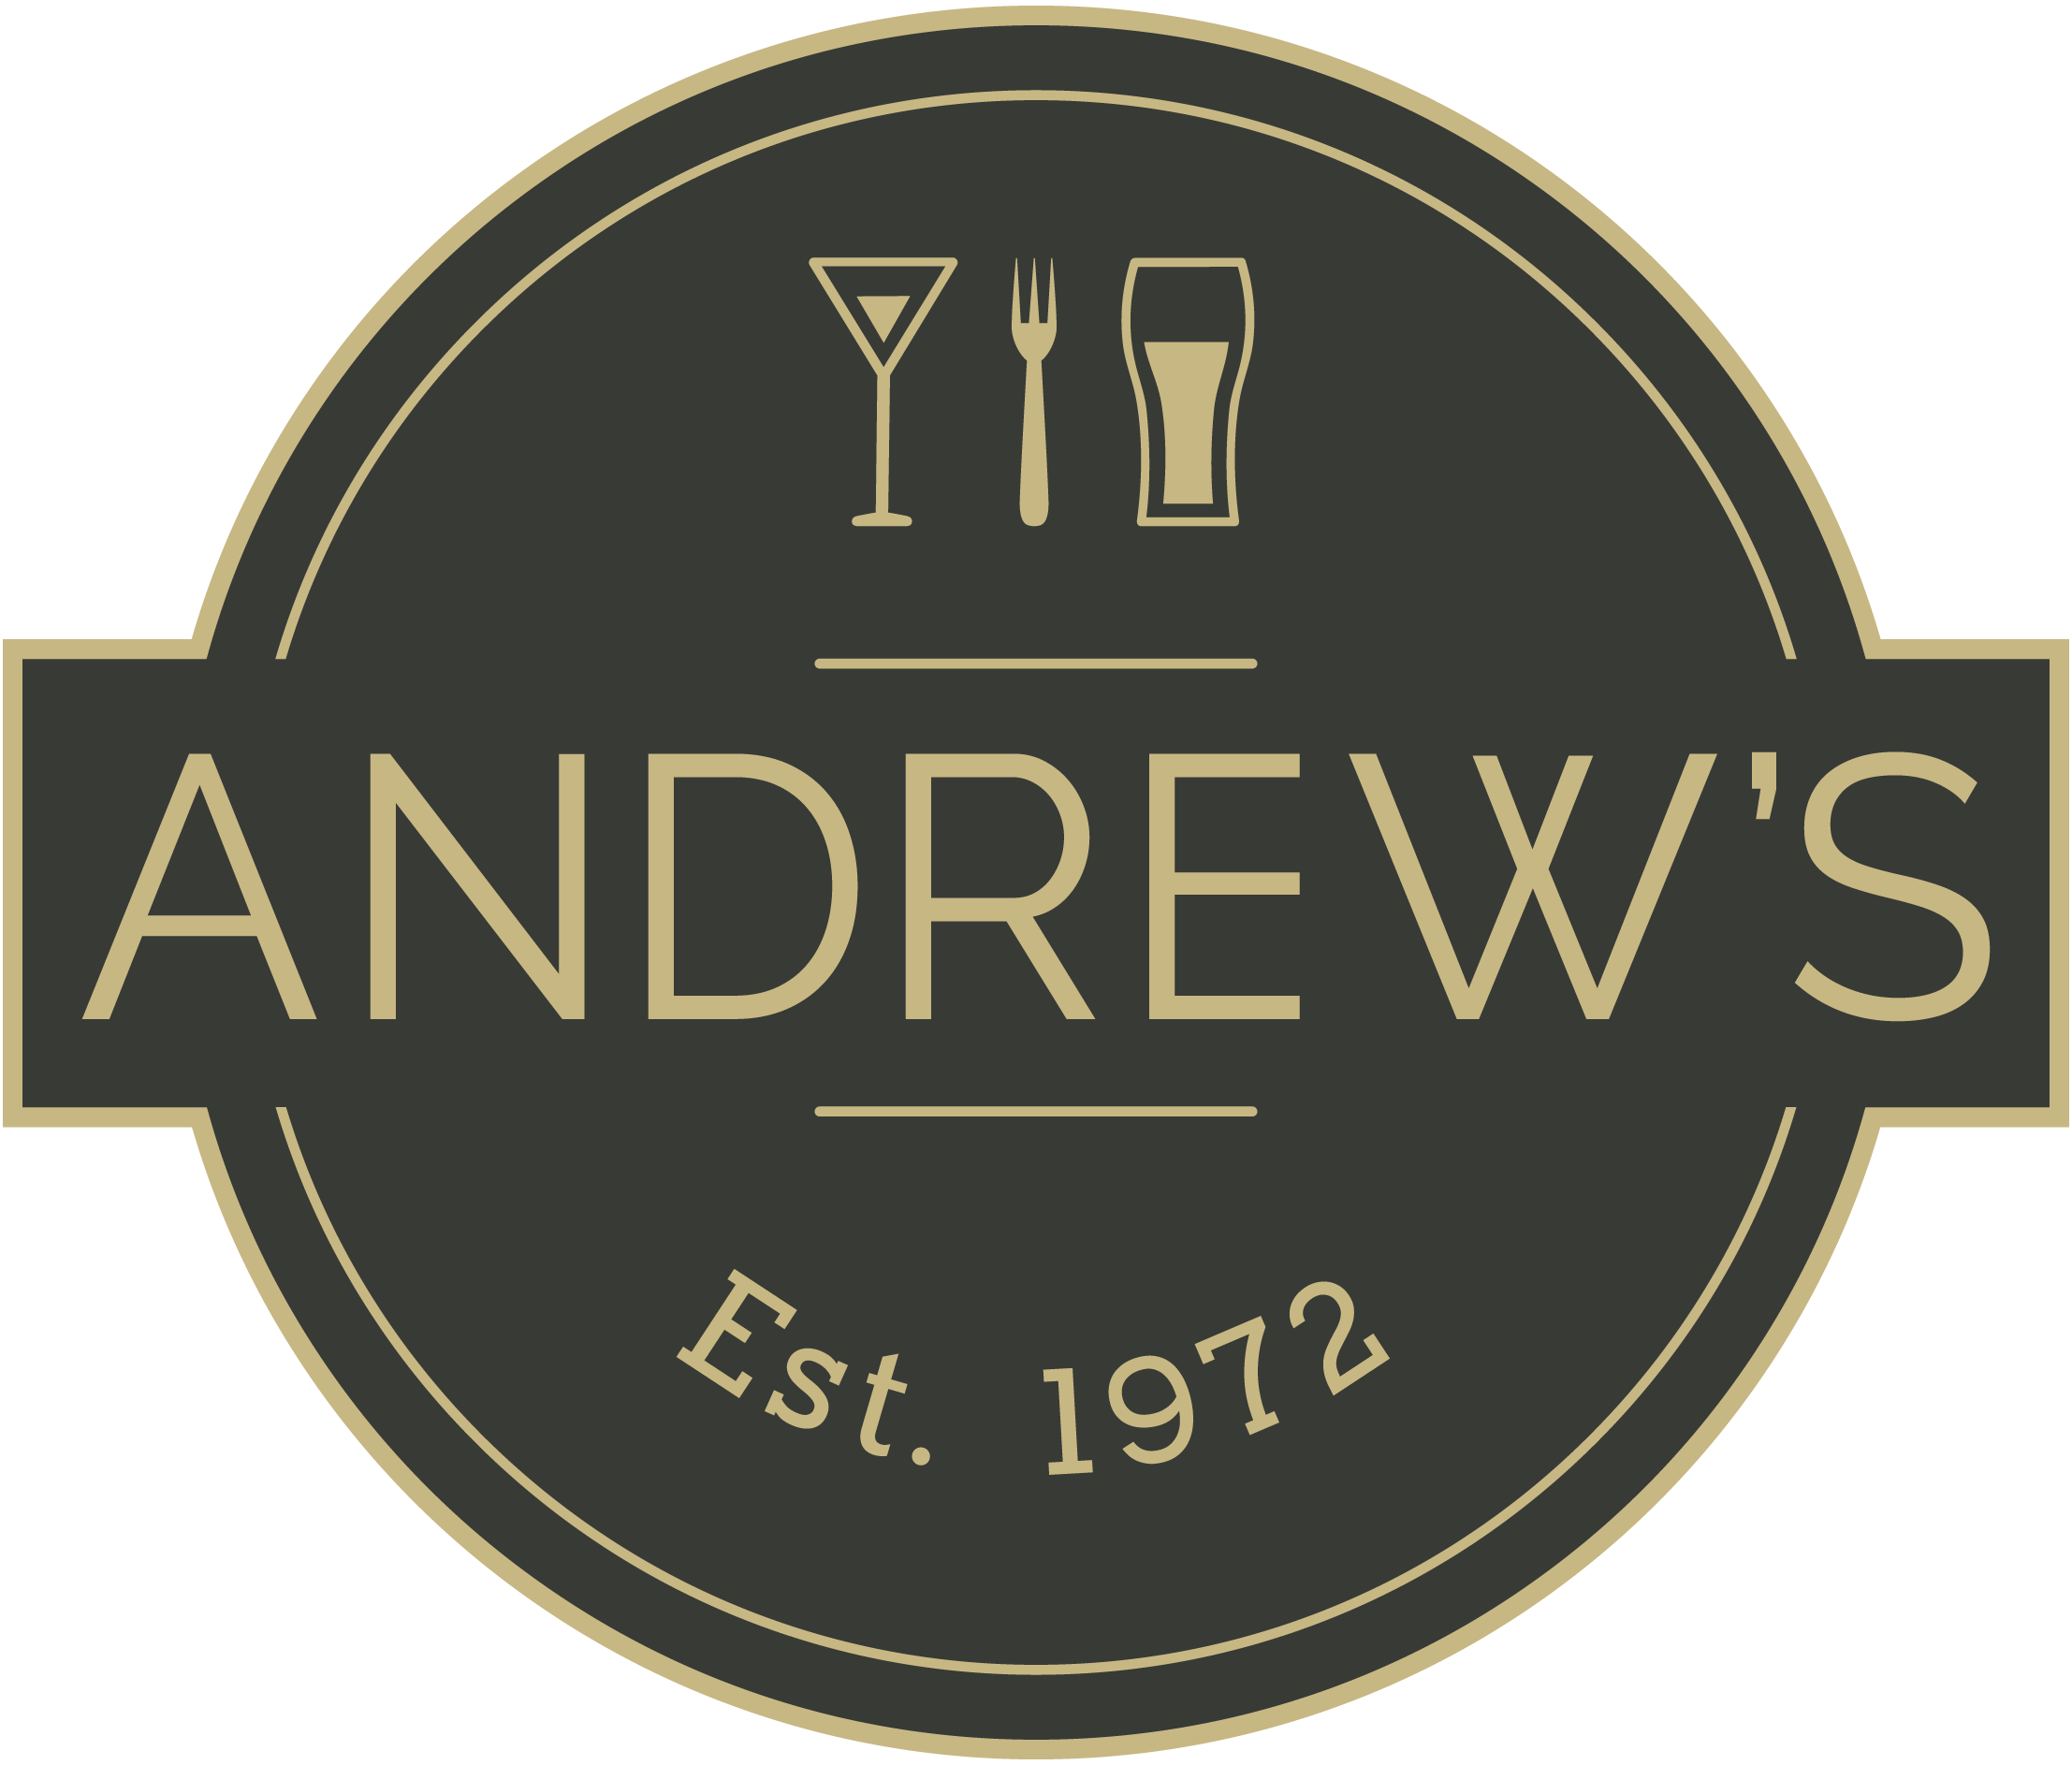 Andrew's Downtown logo